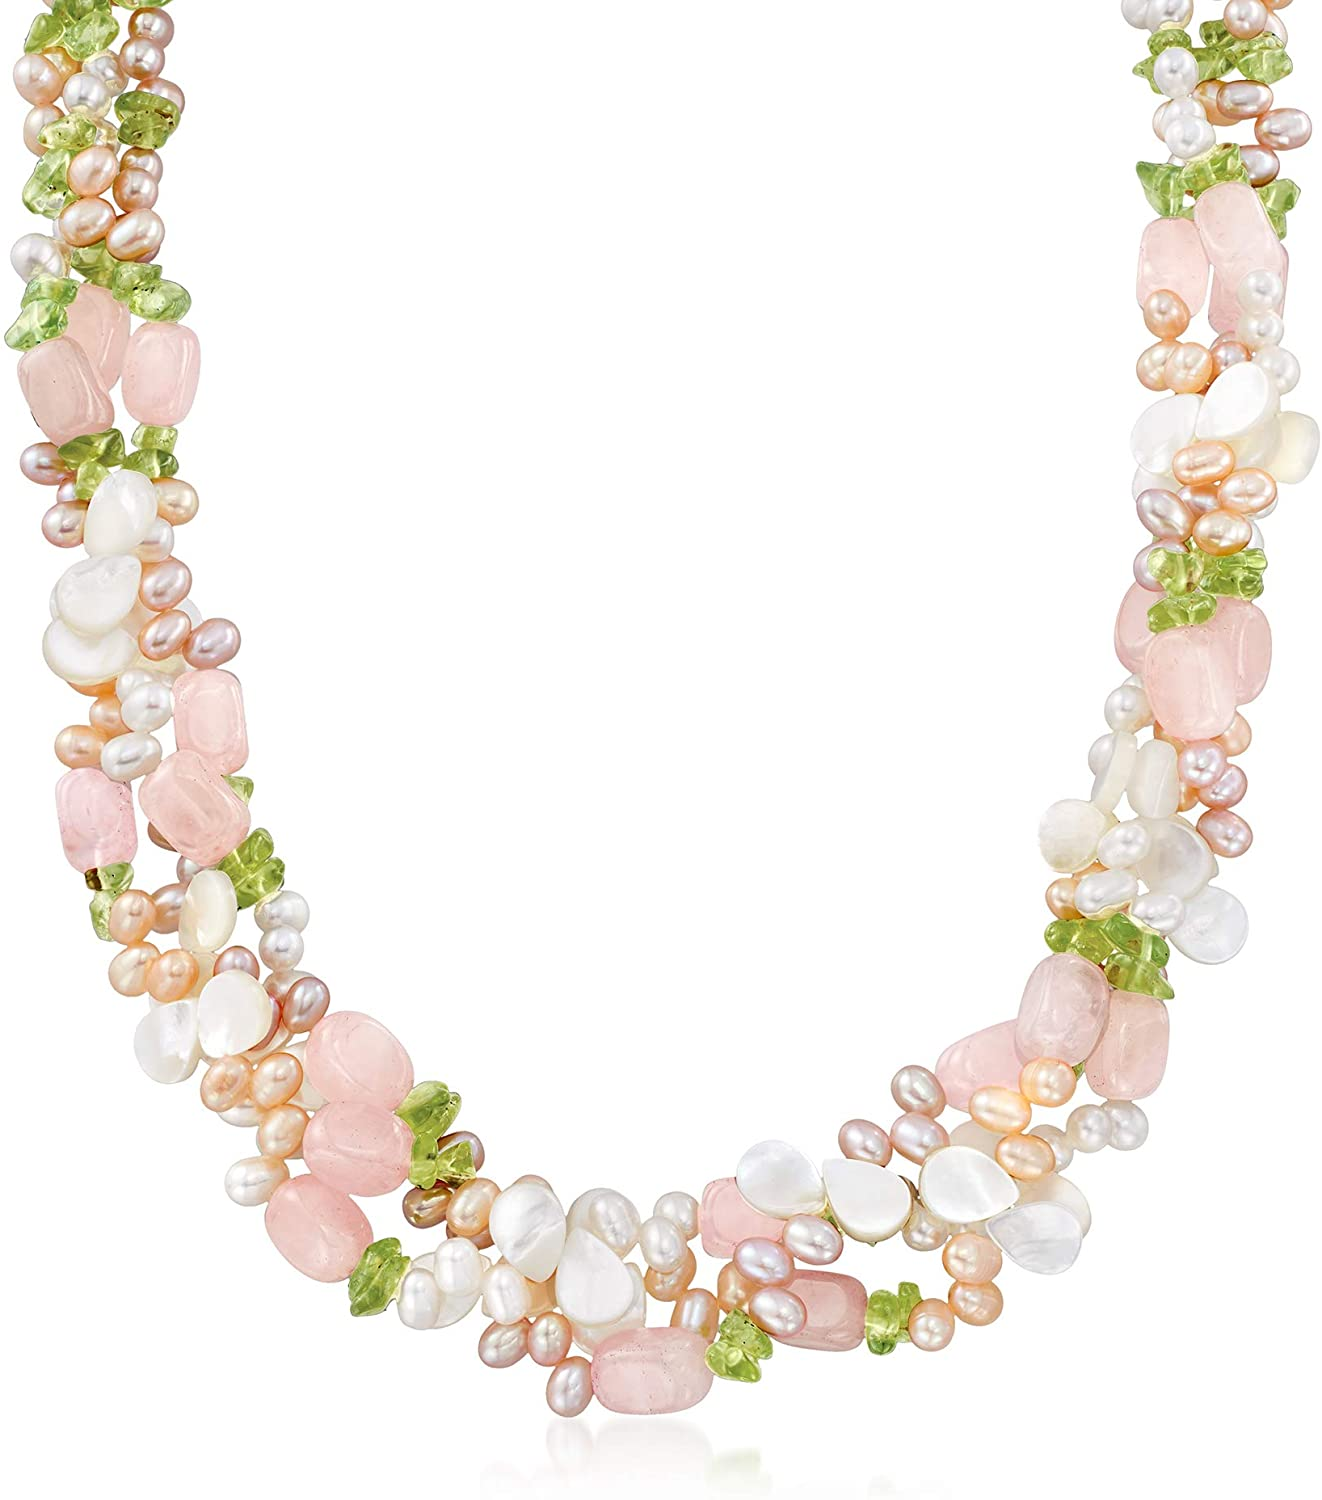 Ross-Simons 4-5mm Multicolored Cultured Pearl and Multi-Stone Torsade Necklace With Sterling Silver. 19 inches